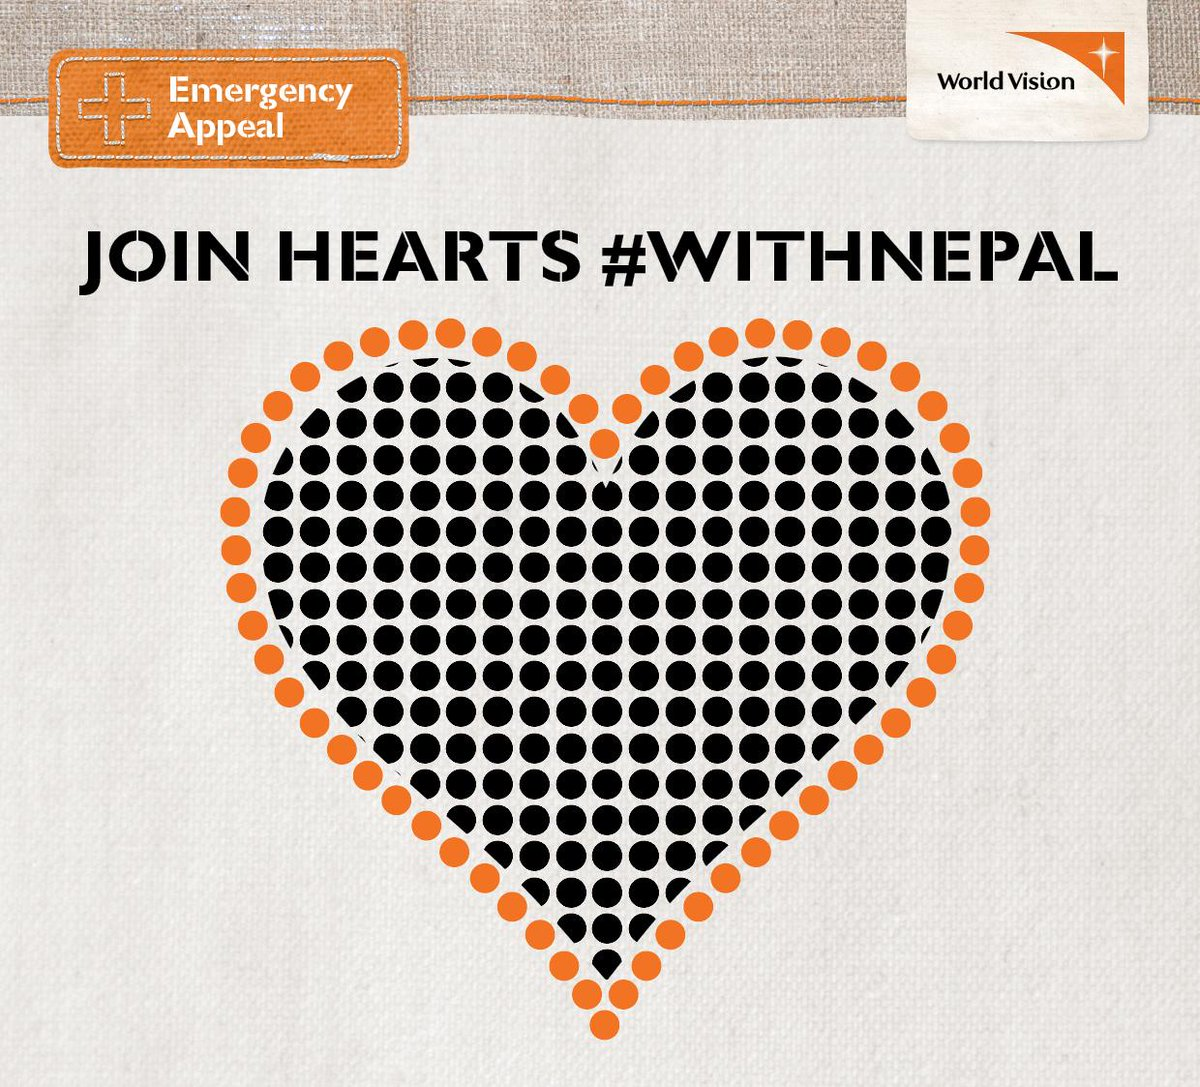 In #Sydney? Join @WorldVisionAus to create a heart made of people & stand #WithNepal at Customs House tomorrow 8-9am http://t.co/UWj0FXJtP0